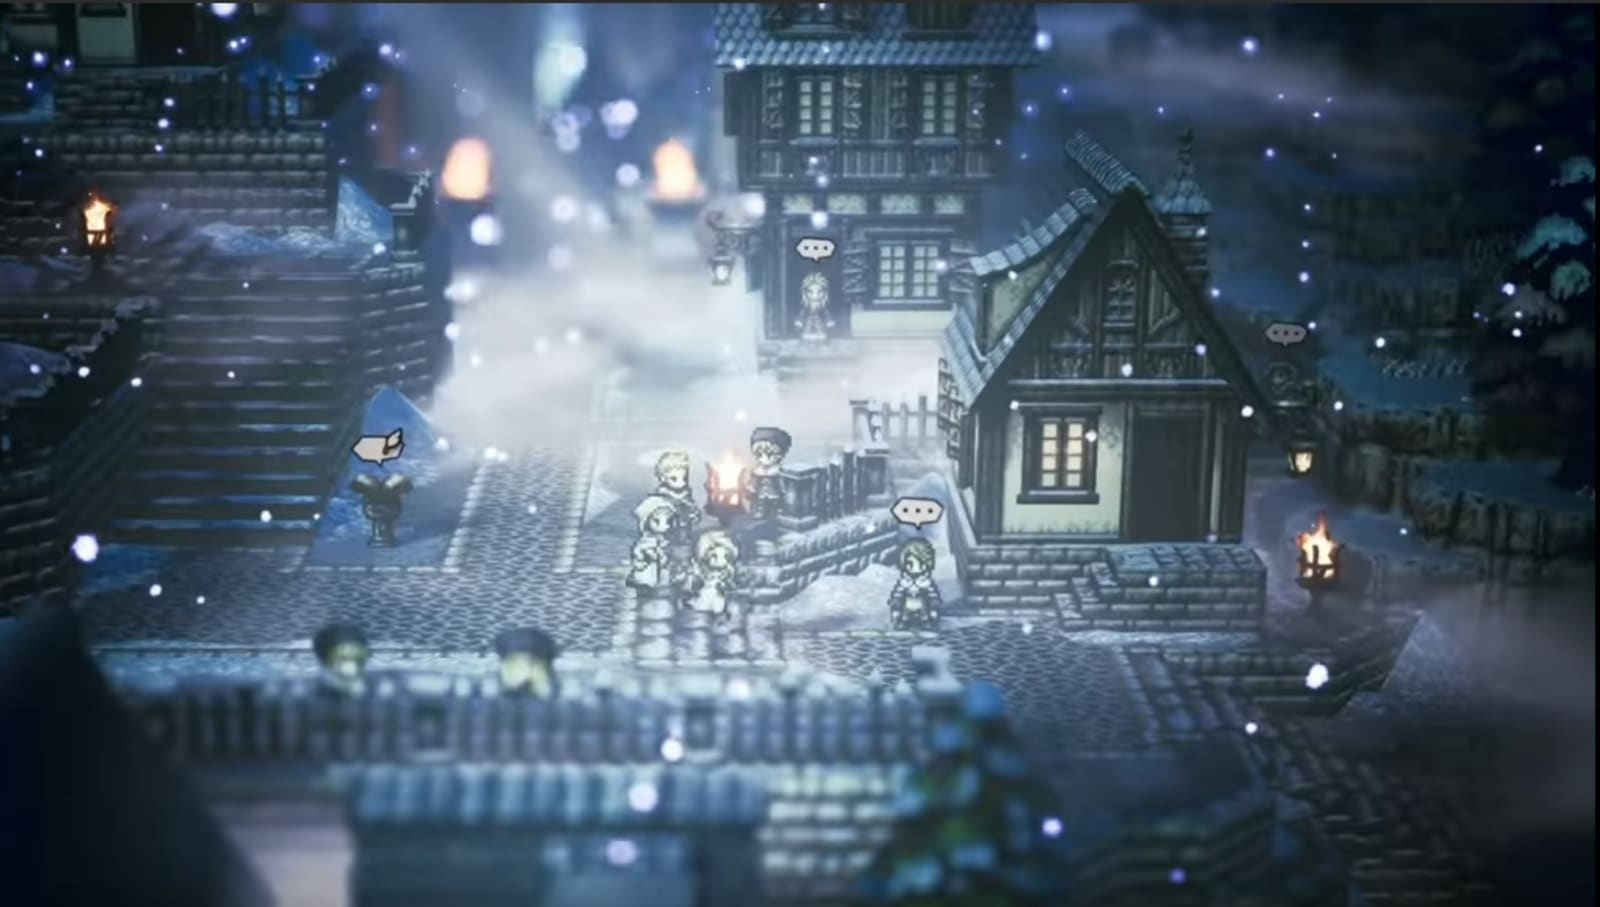 Switch RPG 'Octopath Traveler' comes to PC this summer